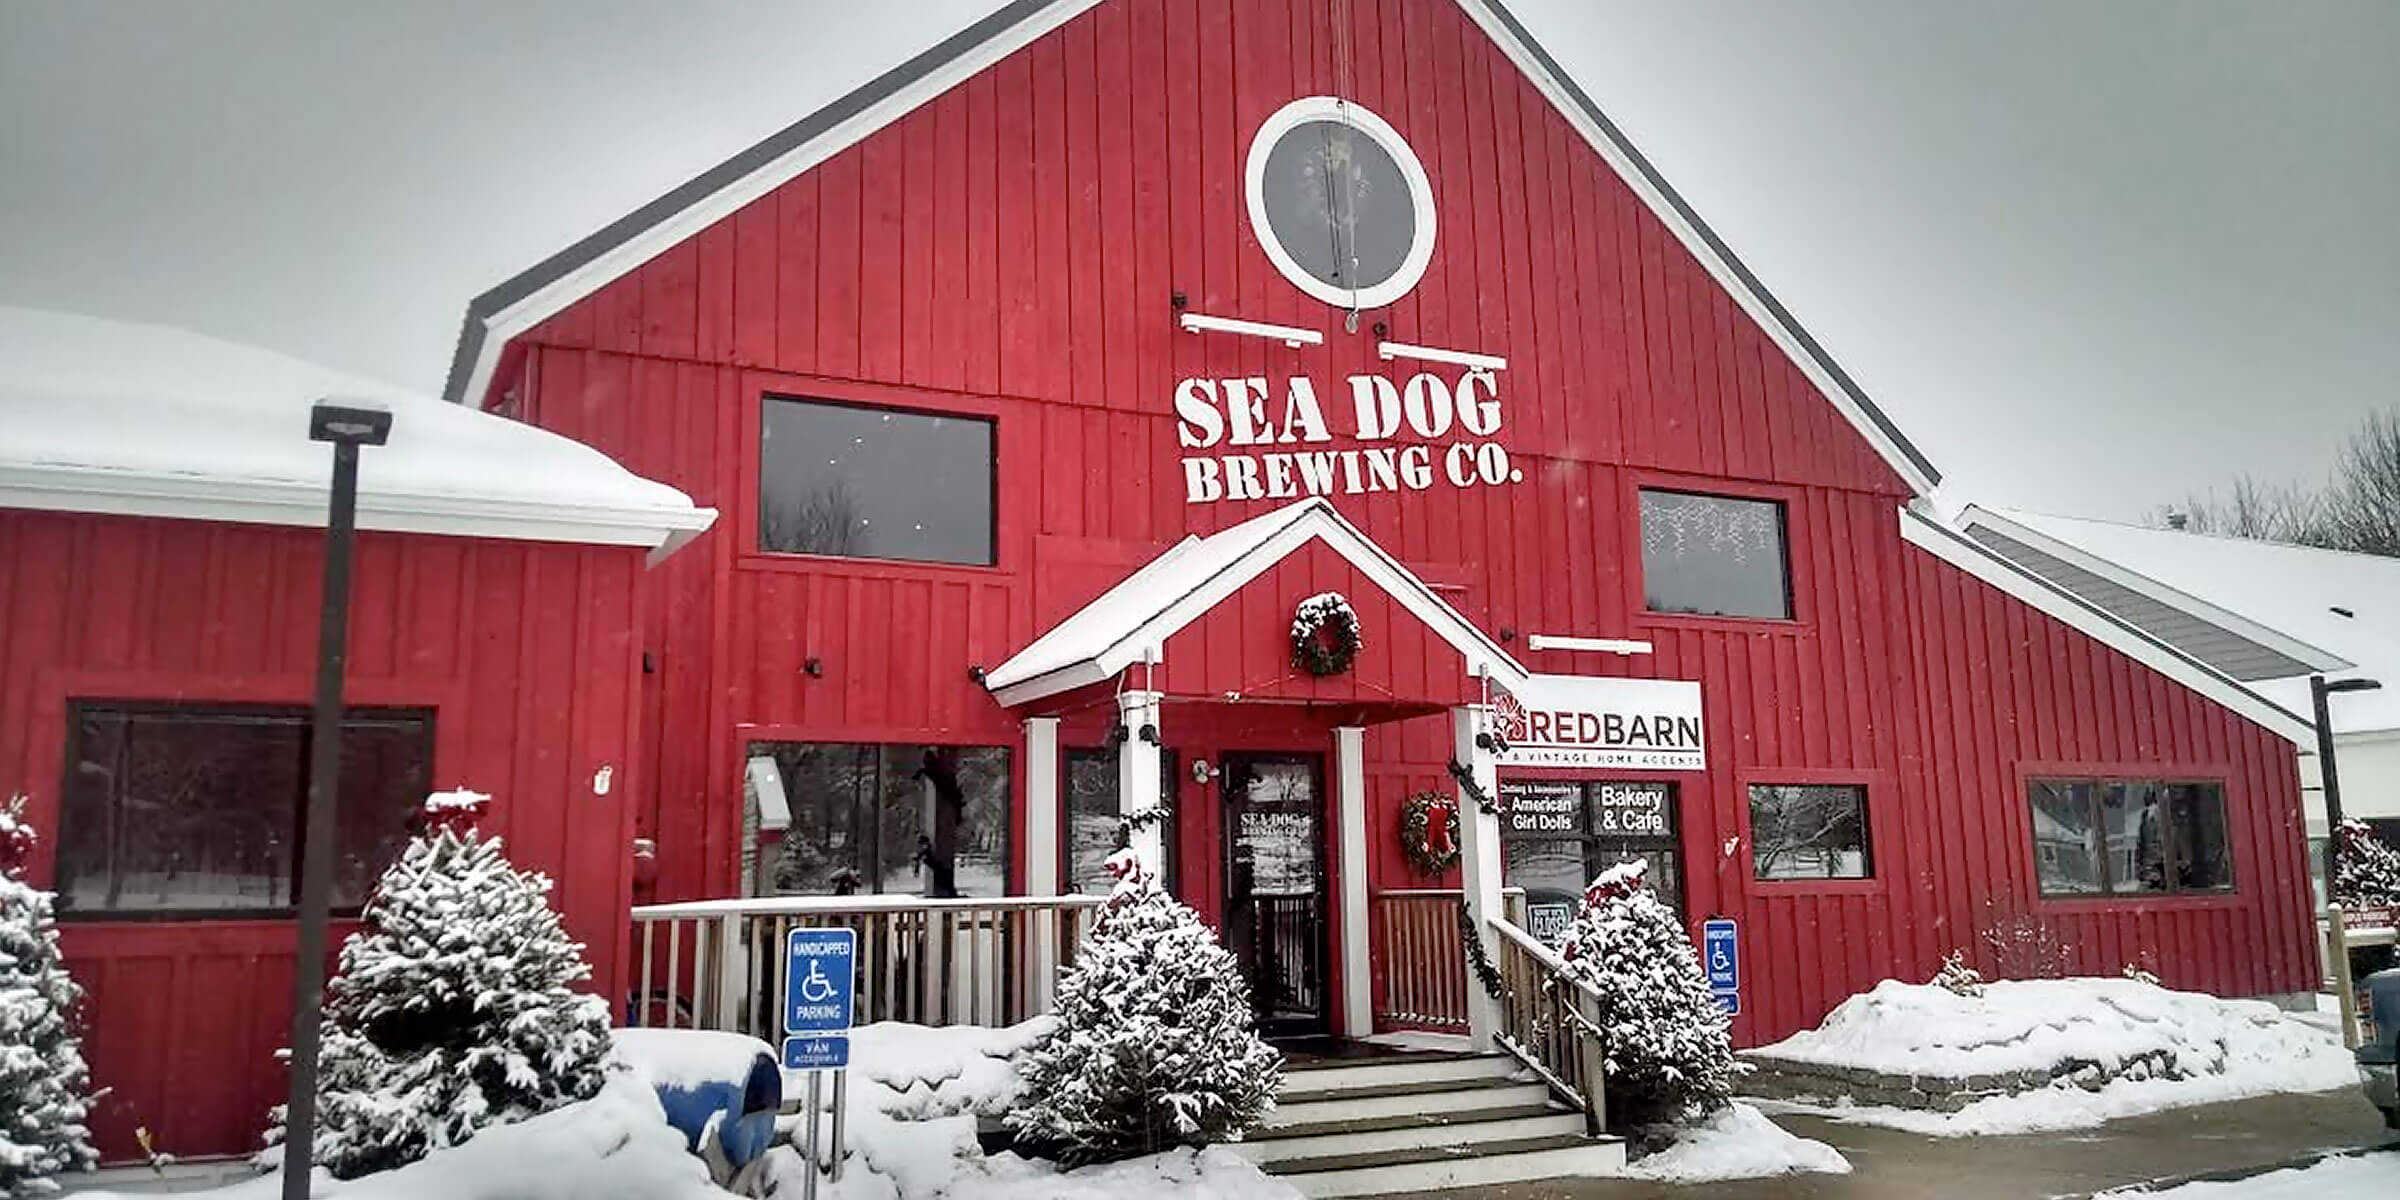 Outside the brewpub at Sea Dog Brewing Co. in North Conway, New Hampshire